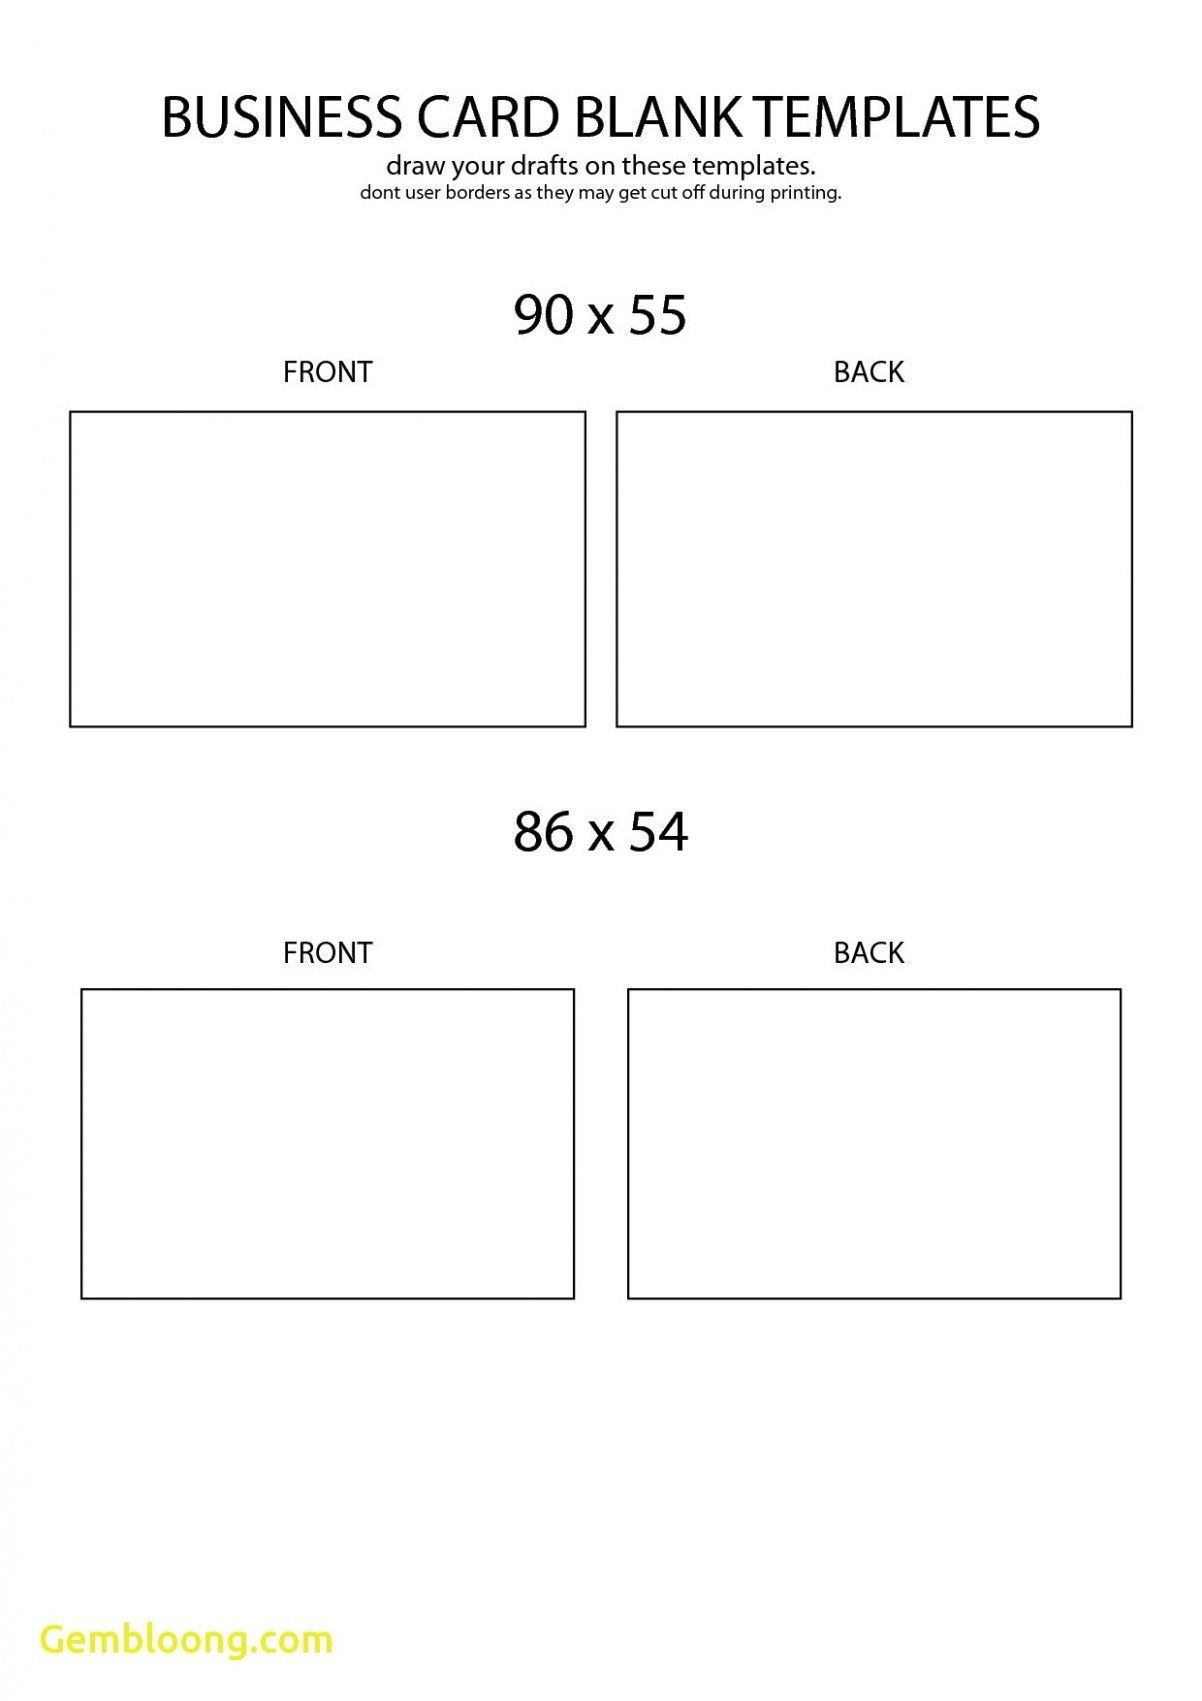 004 Wondrou Free Simple Busines Card Template Word High Resolution Full